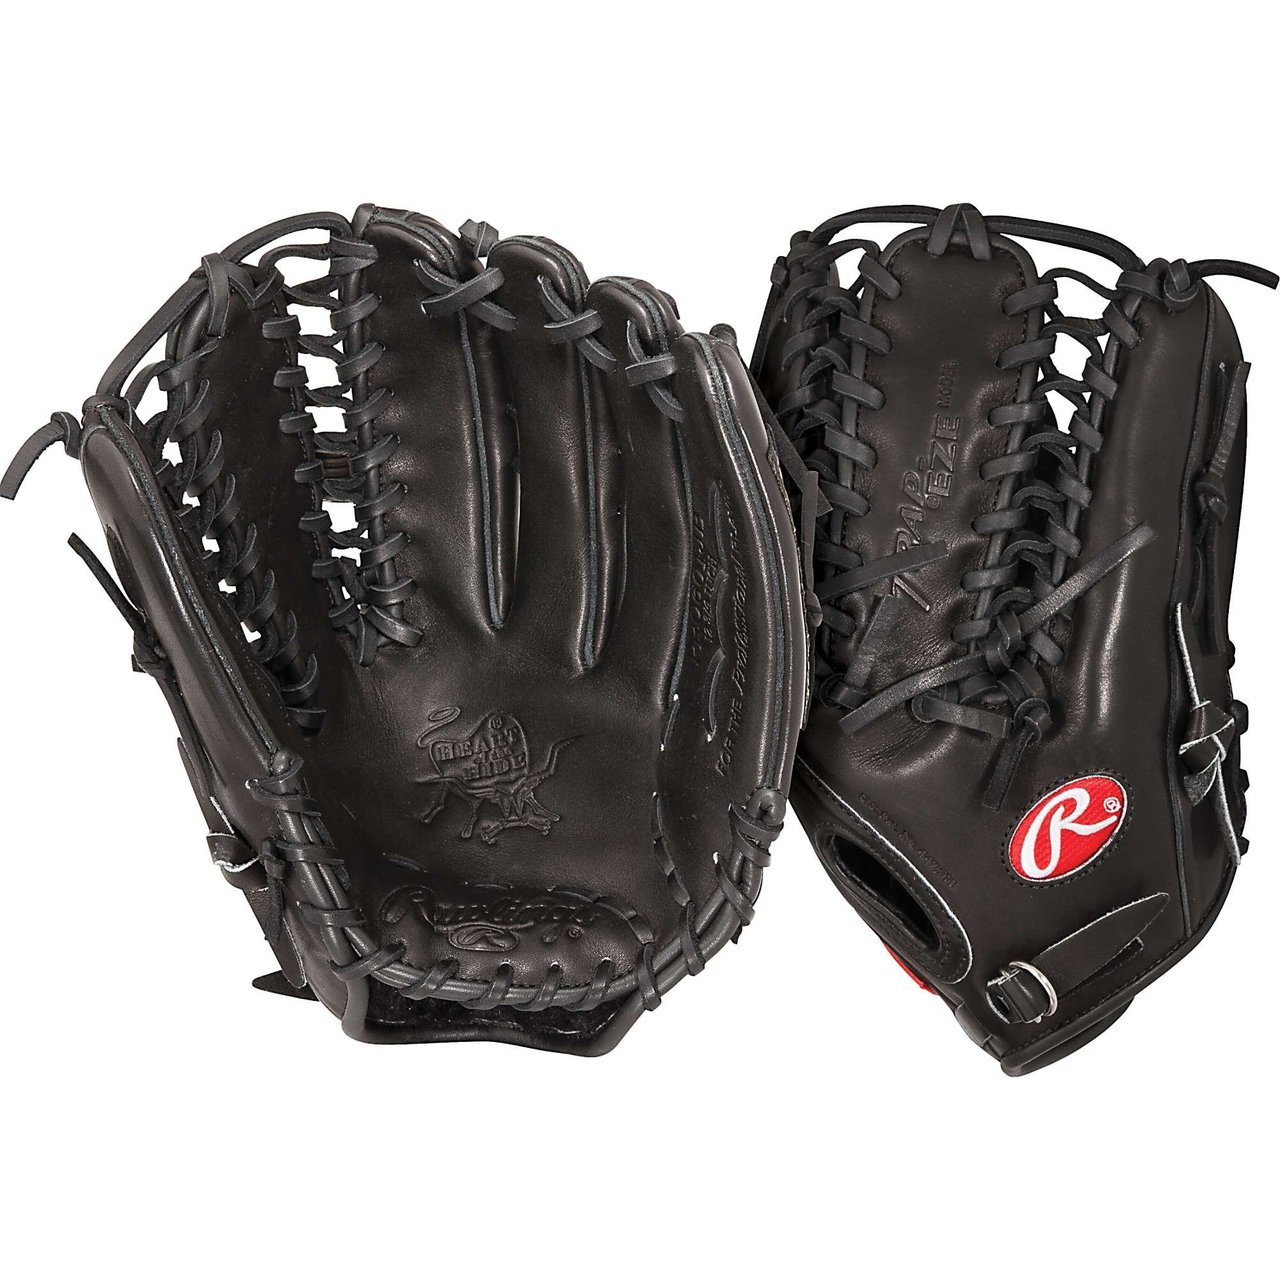 rawlings-pro601jb-heart-of-the-hide-12-75-inch-baseball-glove-right-handed-throw PRO601JB-Right Handed Throw Rawlings 083321187735 Rawlings PRO601JB Heart of the Hide 12.75 inch Baseball Glove Right